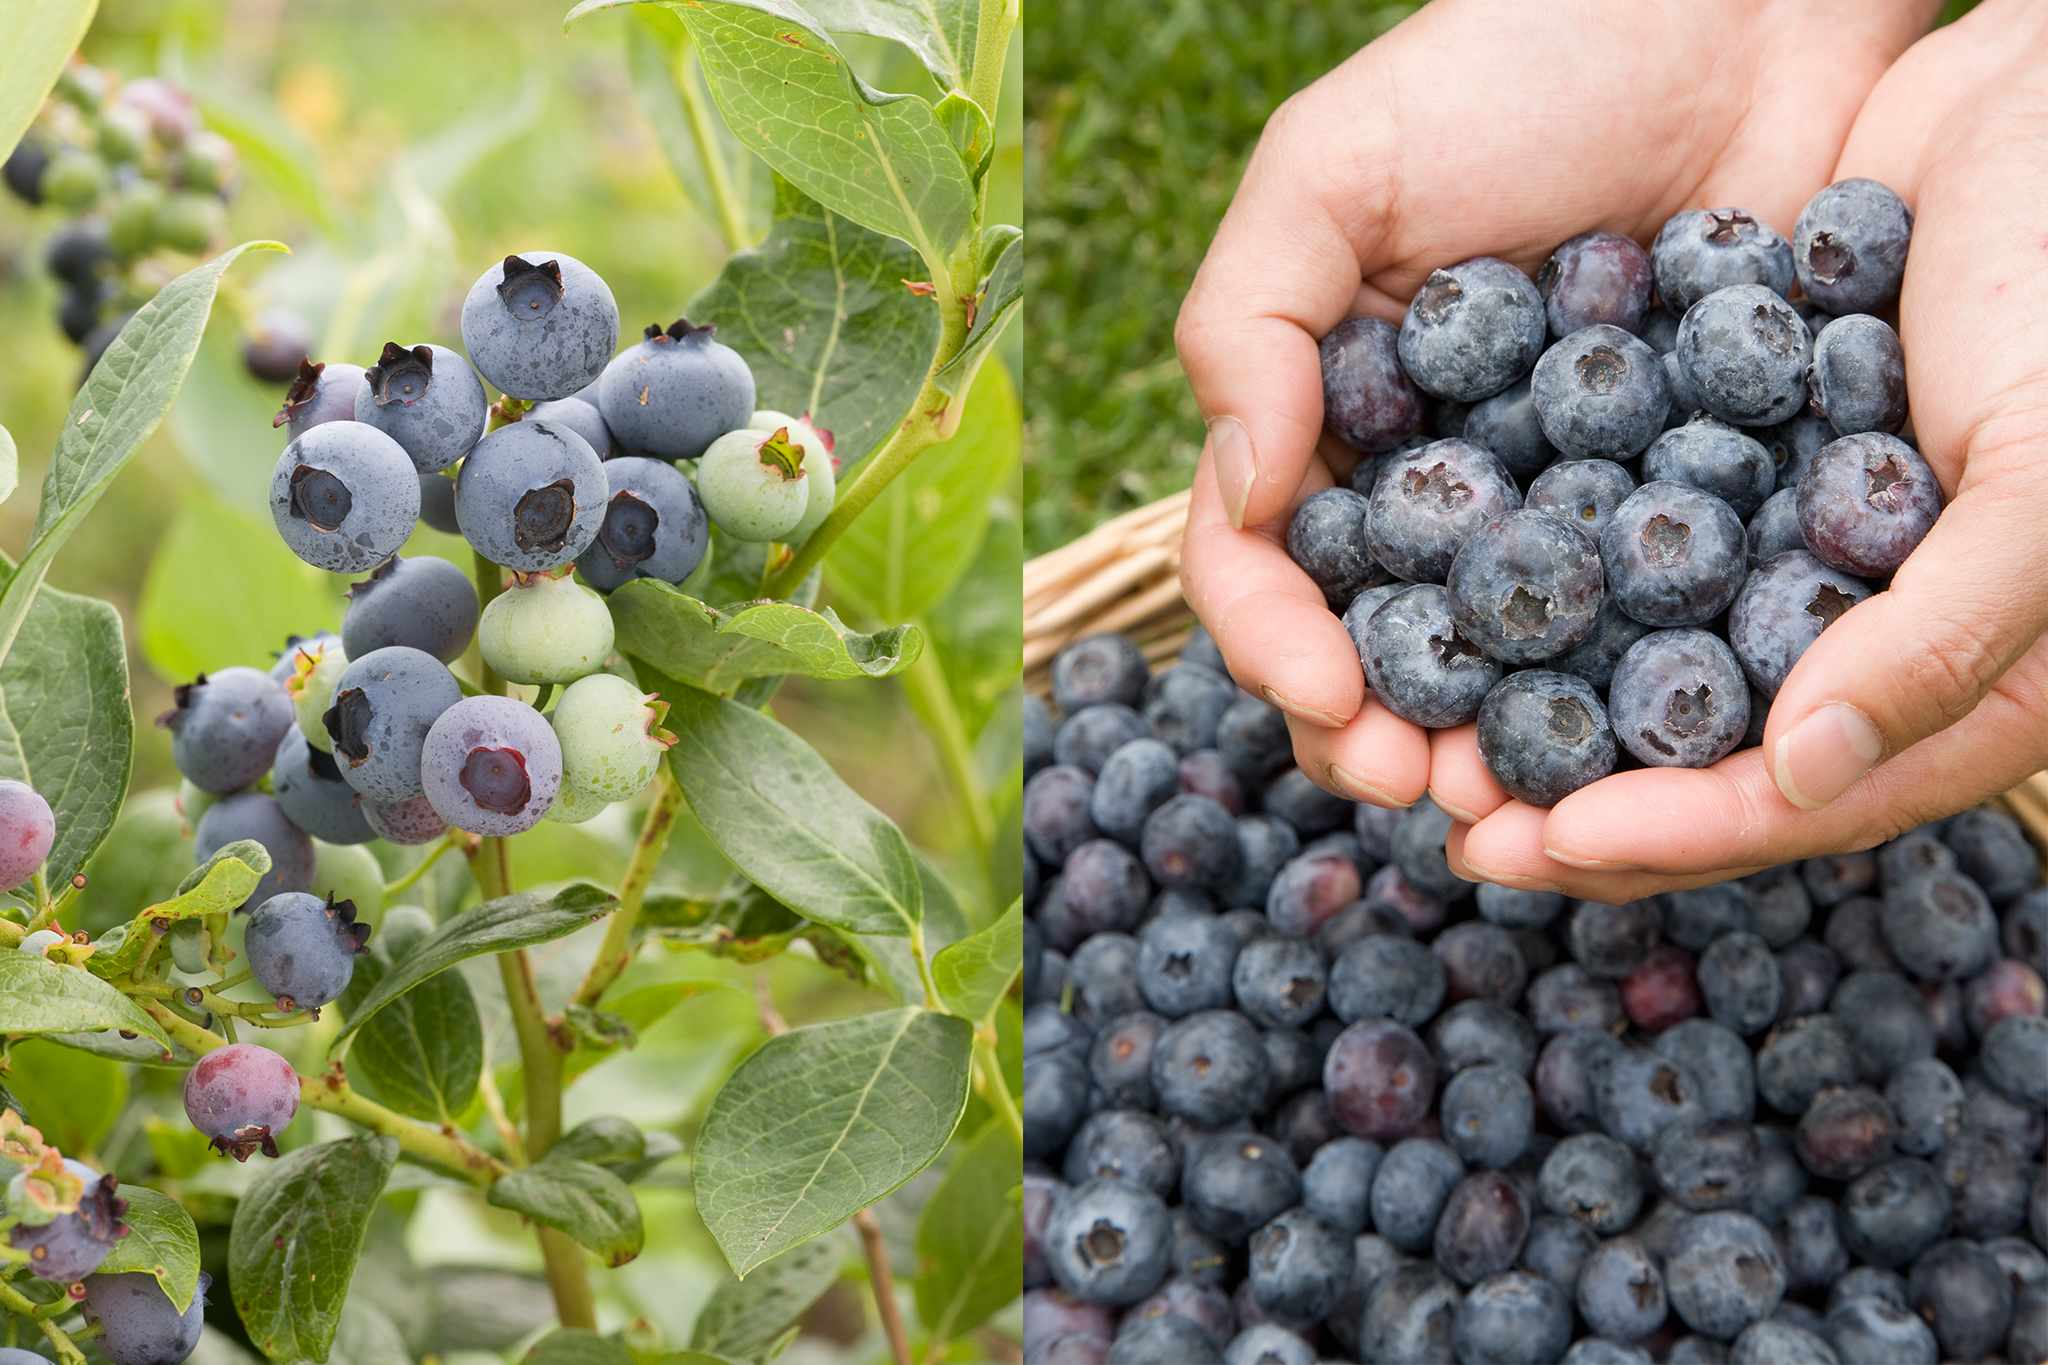 pomona-fruits-blueberries-2048-1365